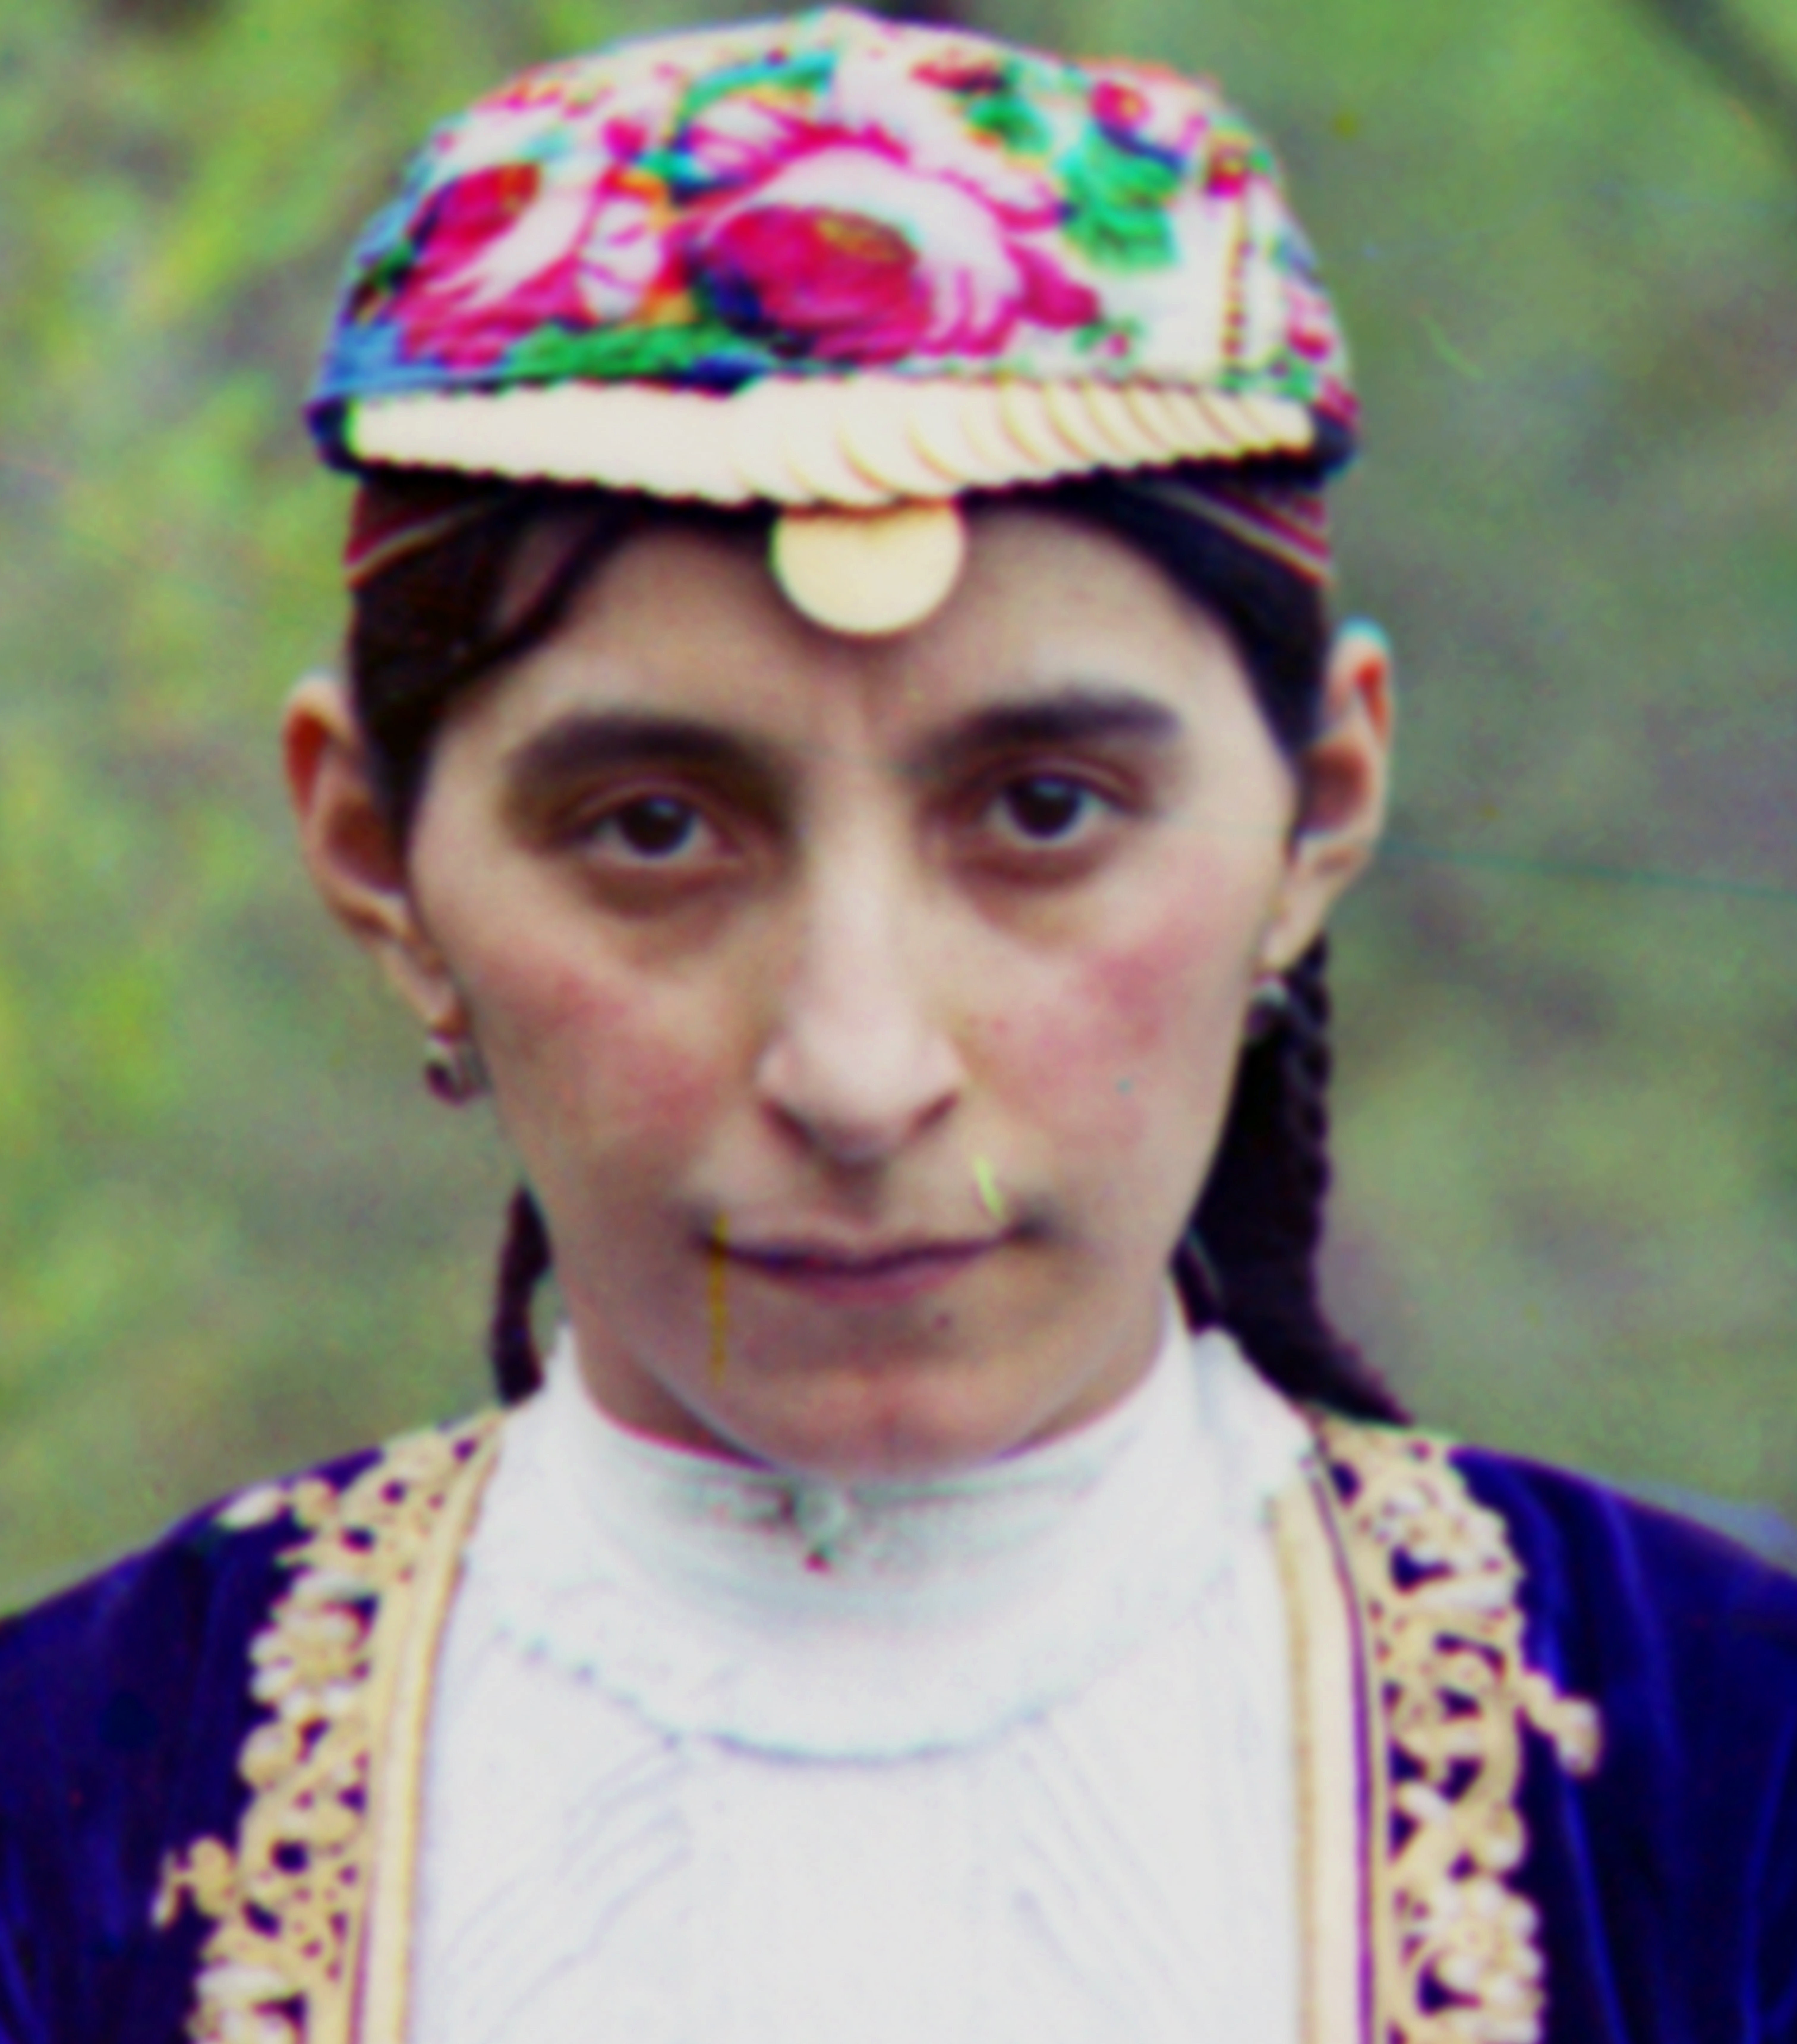 armenian woman cropped.jpg